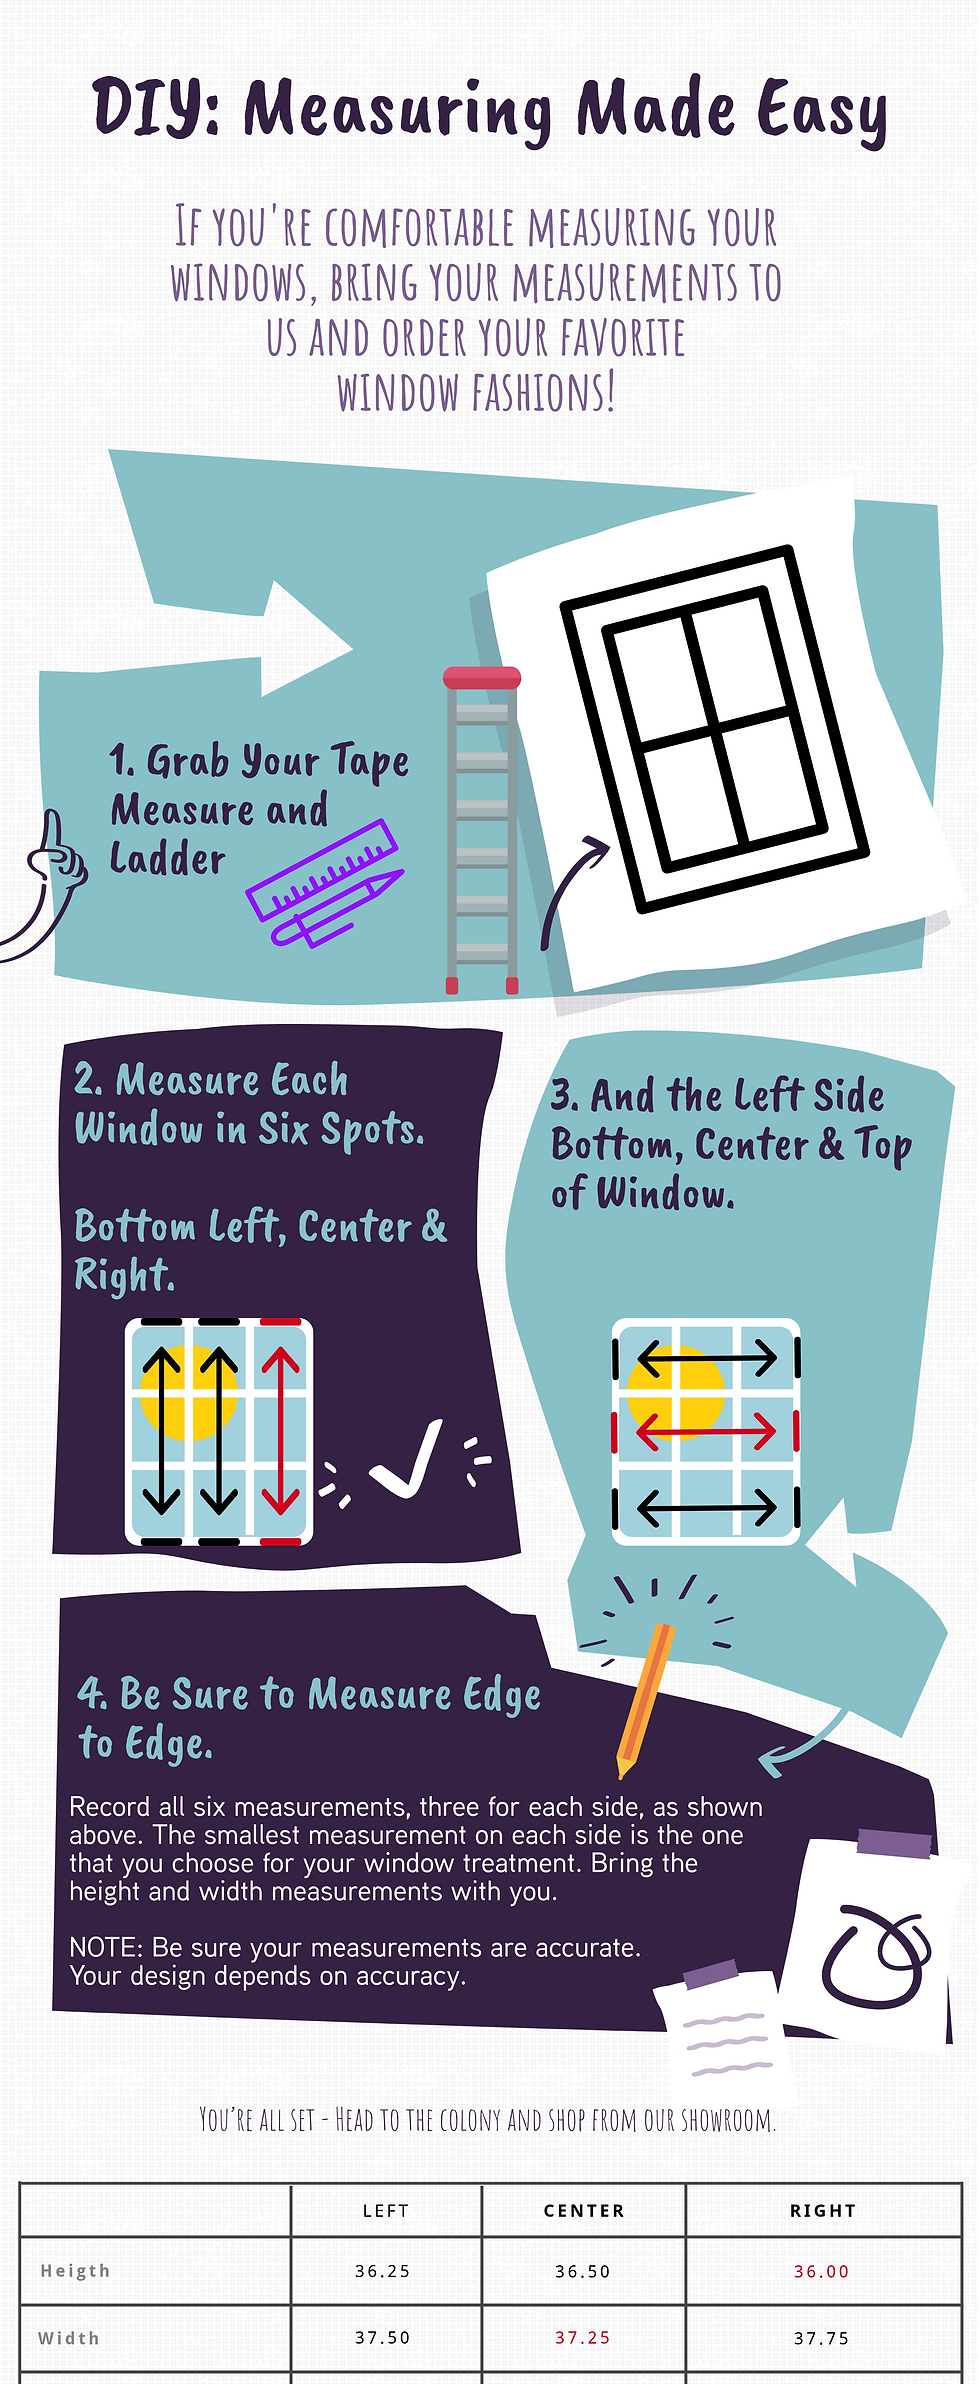 shutter-shop-diy-how-to-measure-your-windows-fo-a-perfect-window-treatment-fit-evy-time.jpg